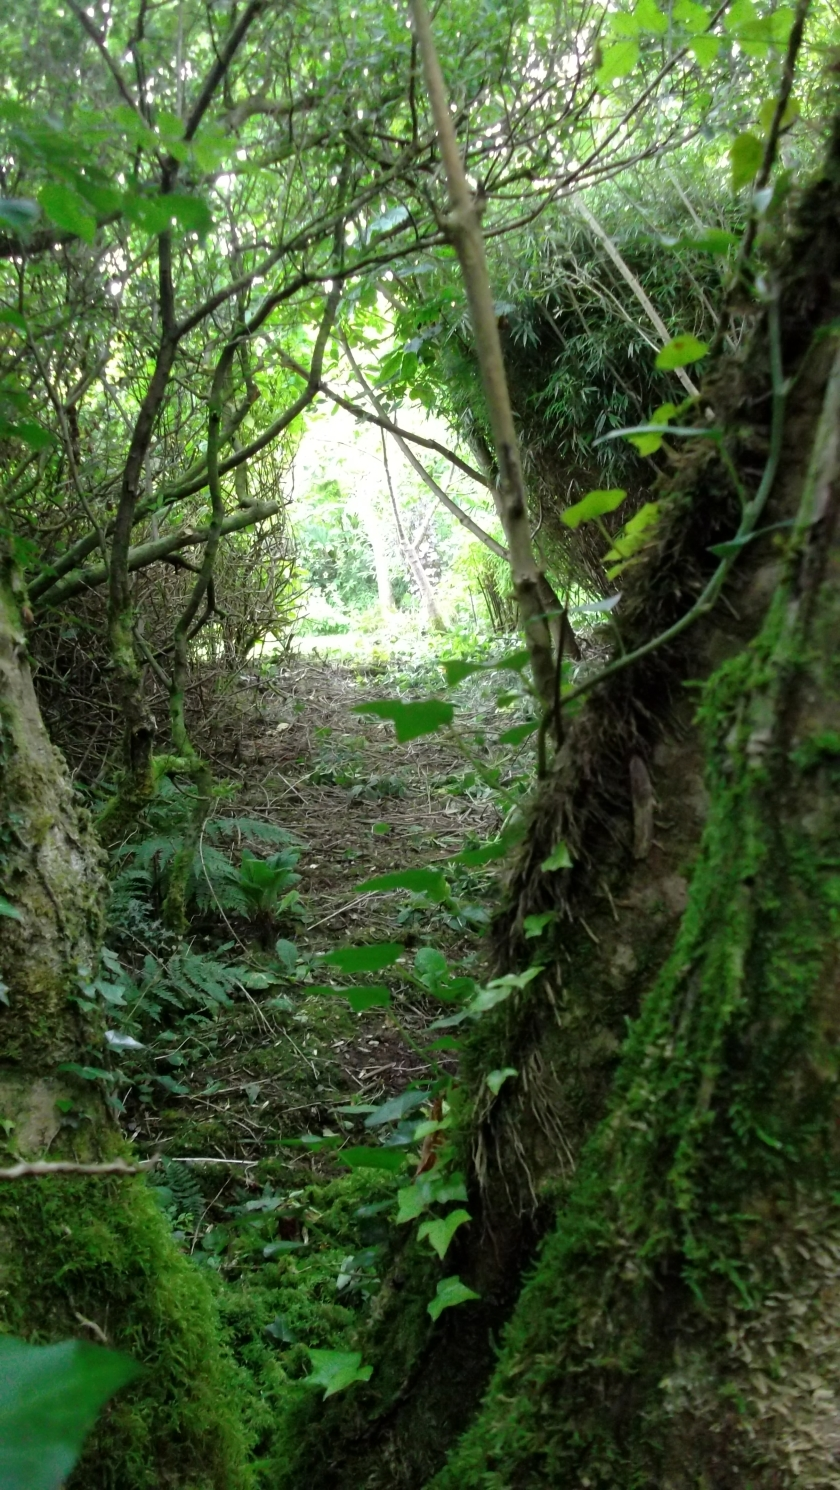 Permaculture Gardens at bealtainecottage.com 029